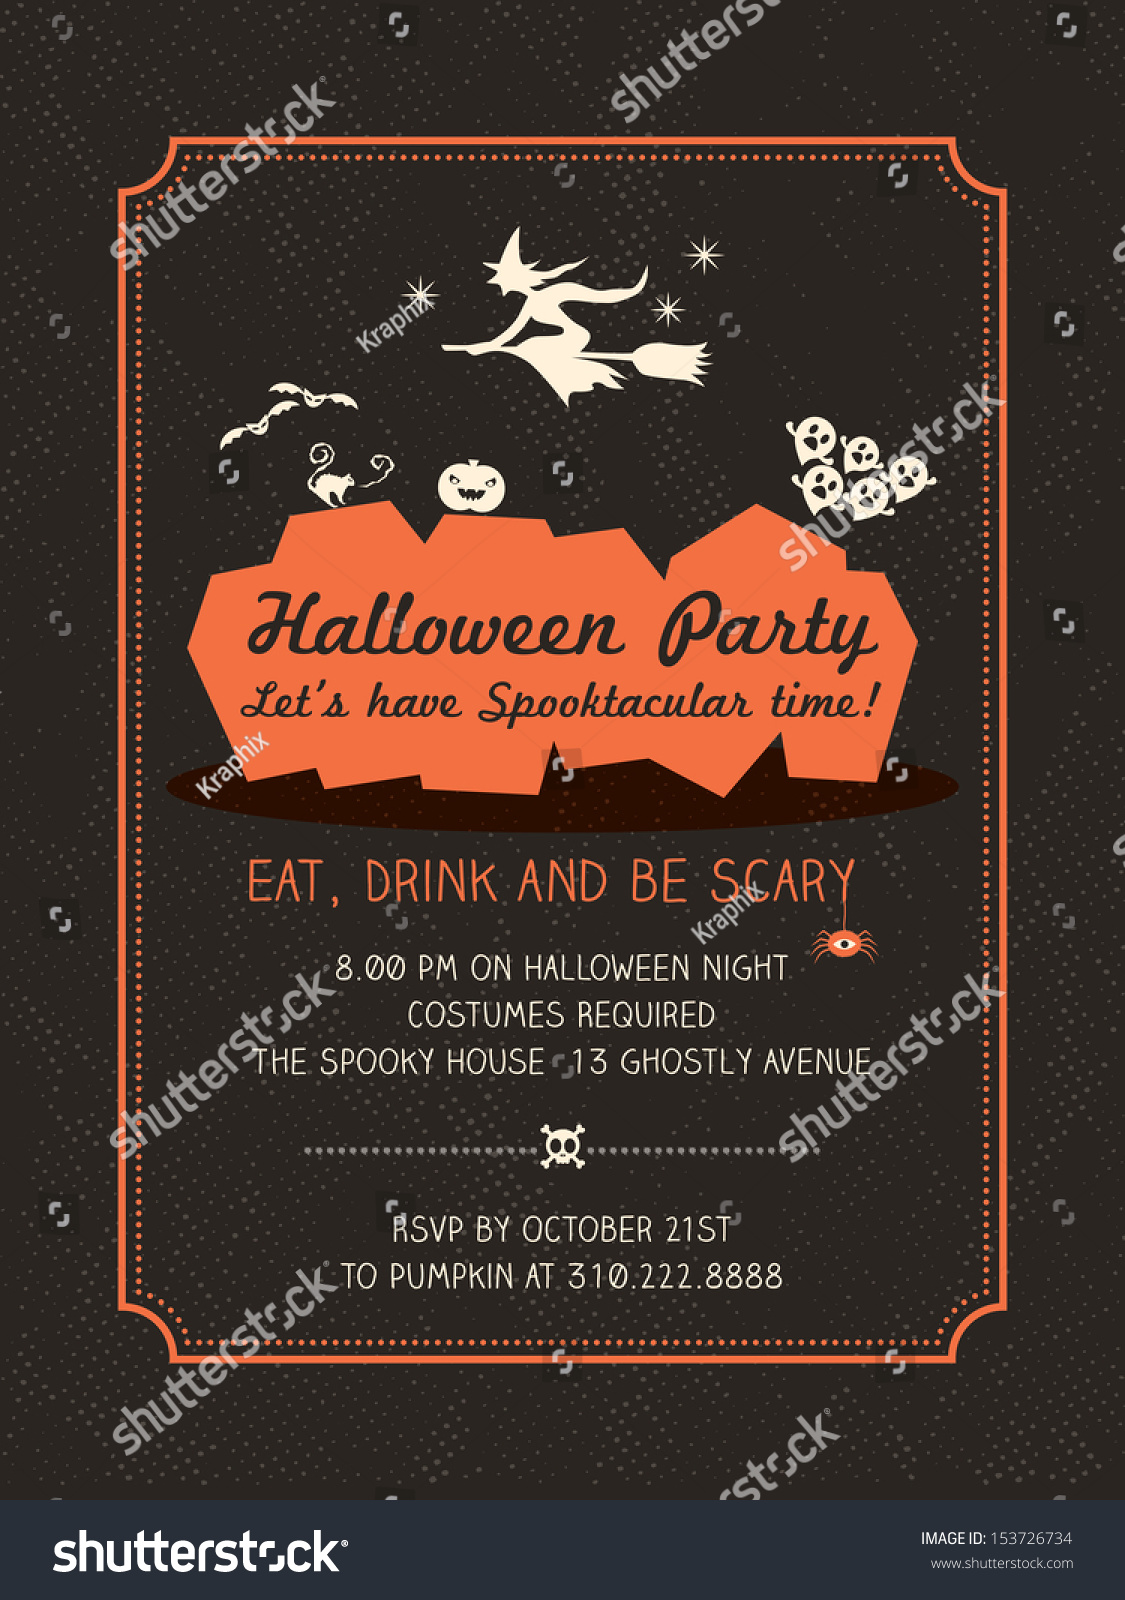 halloween party invitation template cardposterflyer lager vektor 153726734 shutterstock. Black Bedroom Furniture Sets. Home Design Ideas